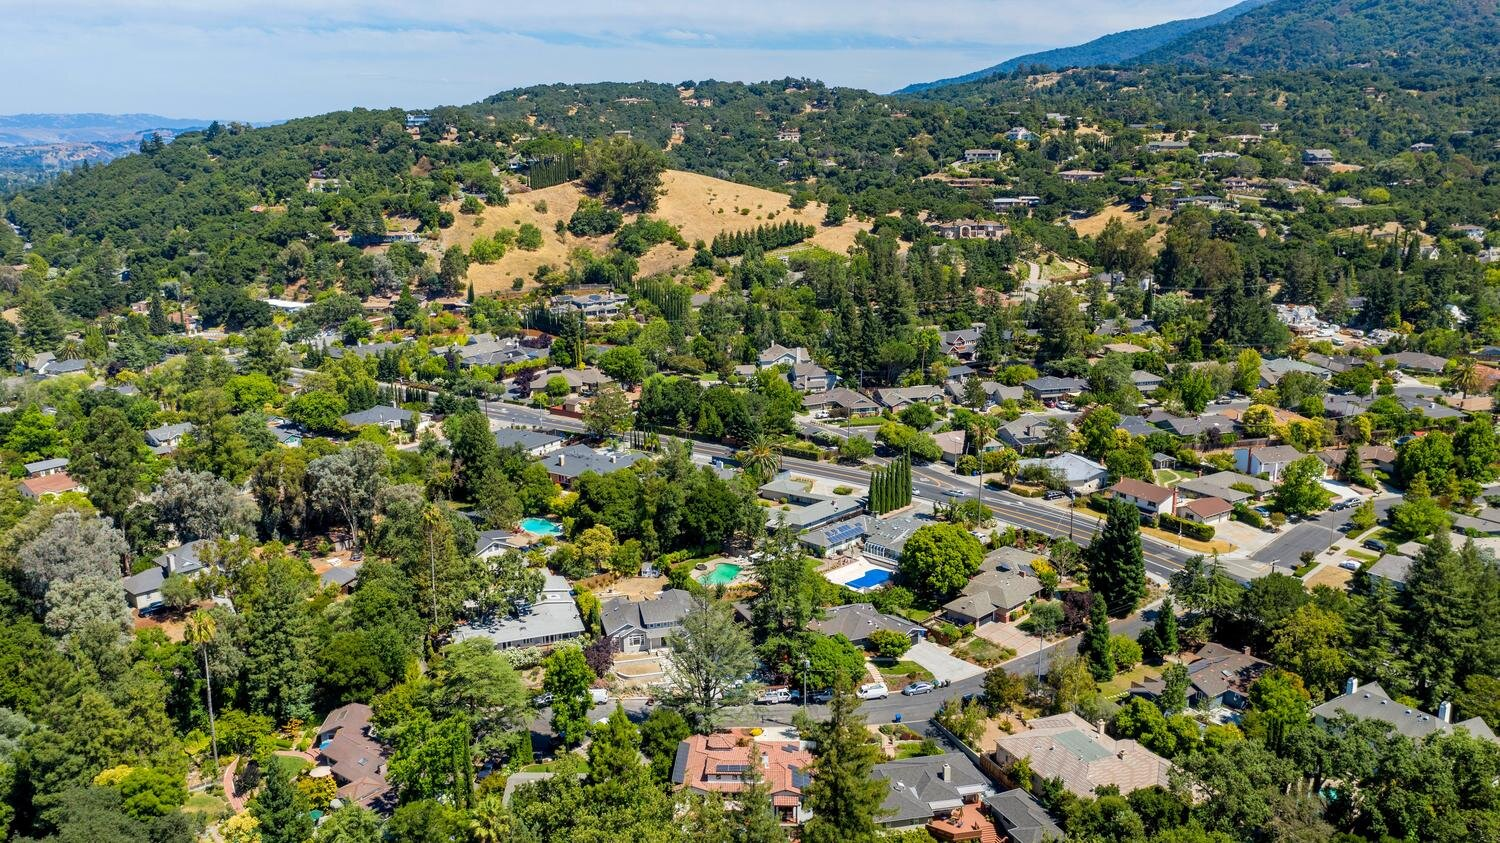 16021 Winterbrook Rd Los Gatos-large-078-077-Aerial Property View to City-1500x843-72dpi.jpg